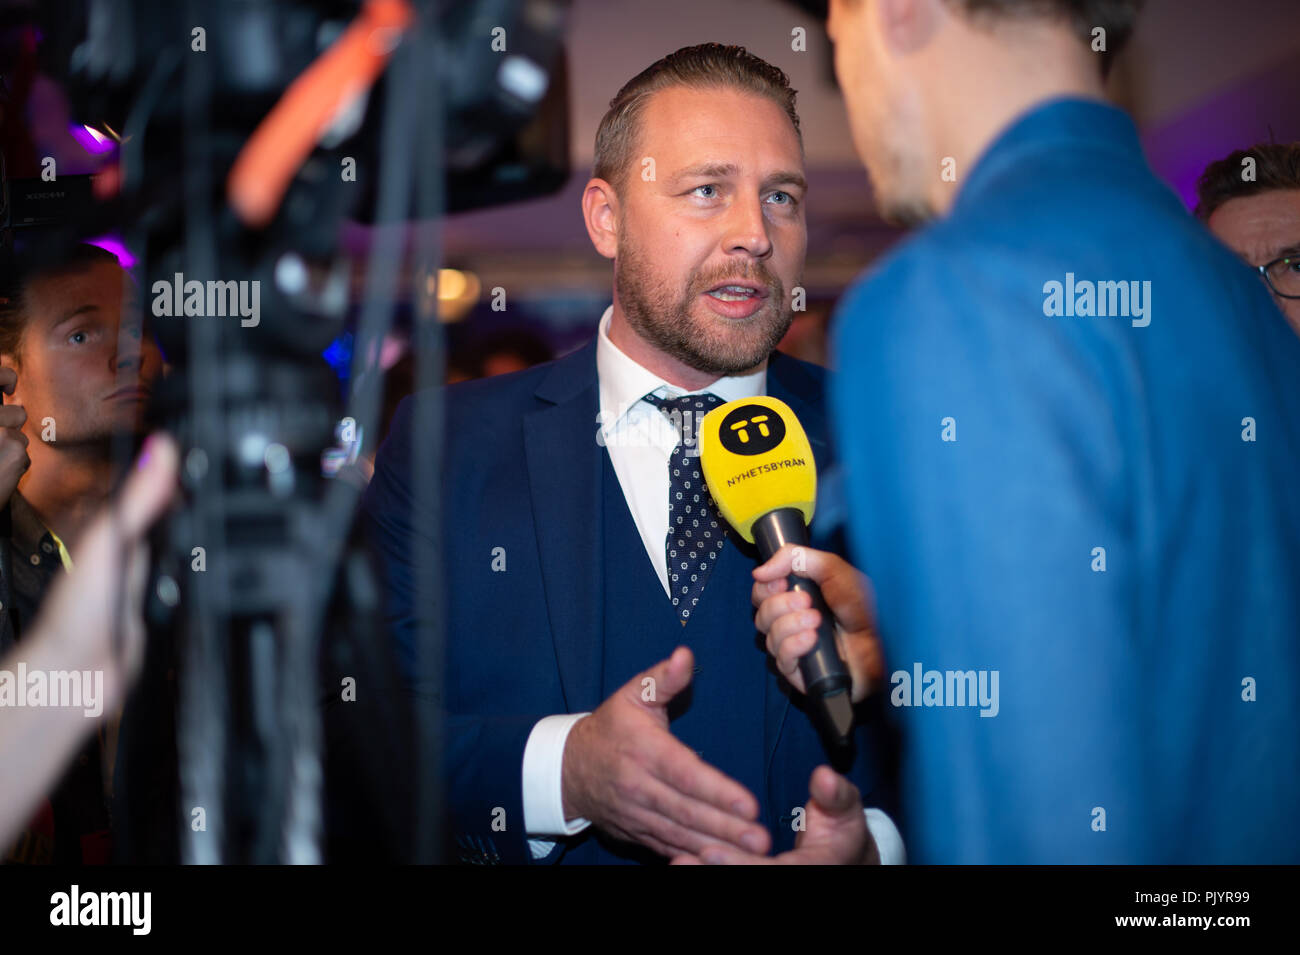 Stockholm, Sweden, September 9, 2018. Swedish General Election 2018.  Election Night Watch Party for Sweden Democrats (SD) in central Stockholm, Sweden. Mattias Karlsson (SD). Credit: Barbro Bergfeldt/Alamy Live News Stock Photo